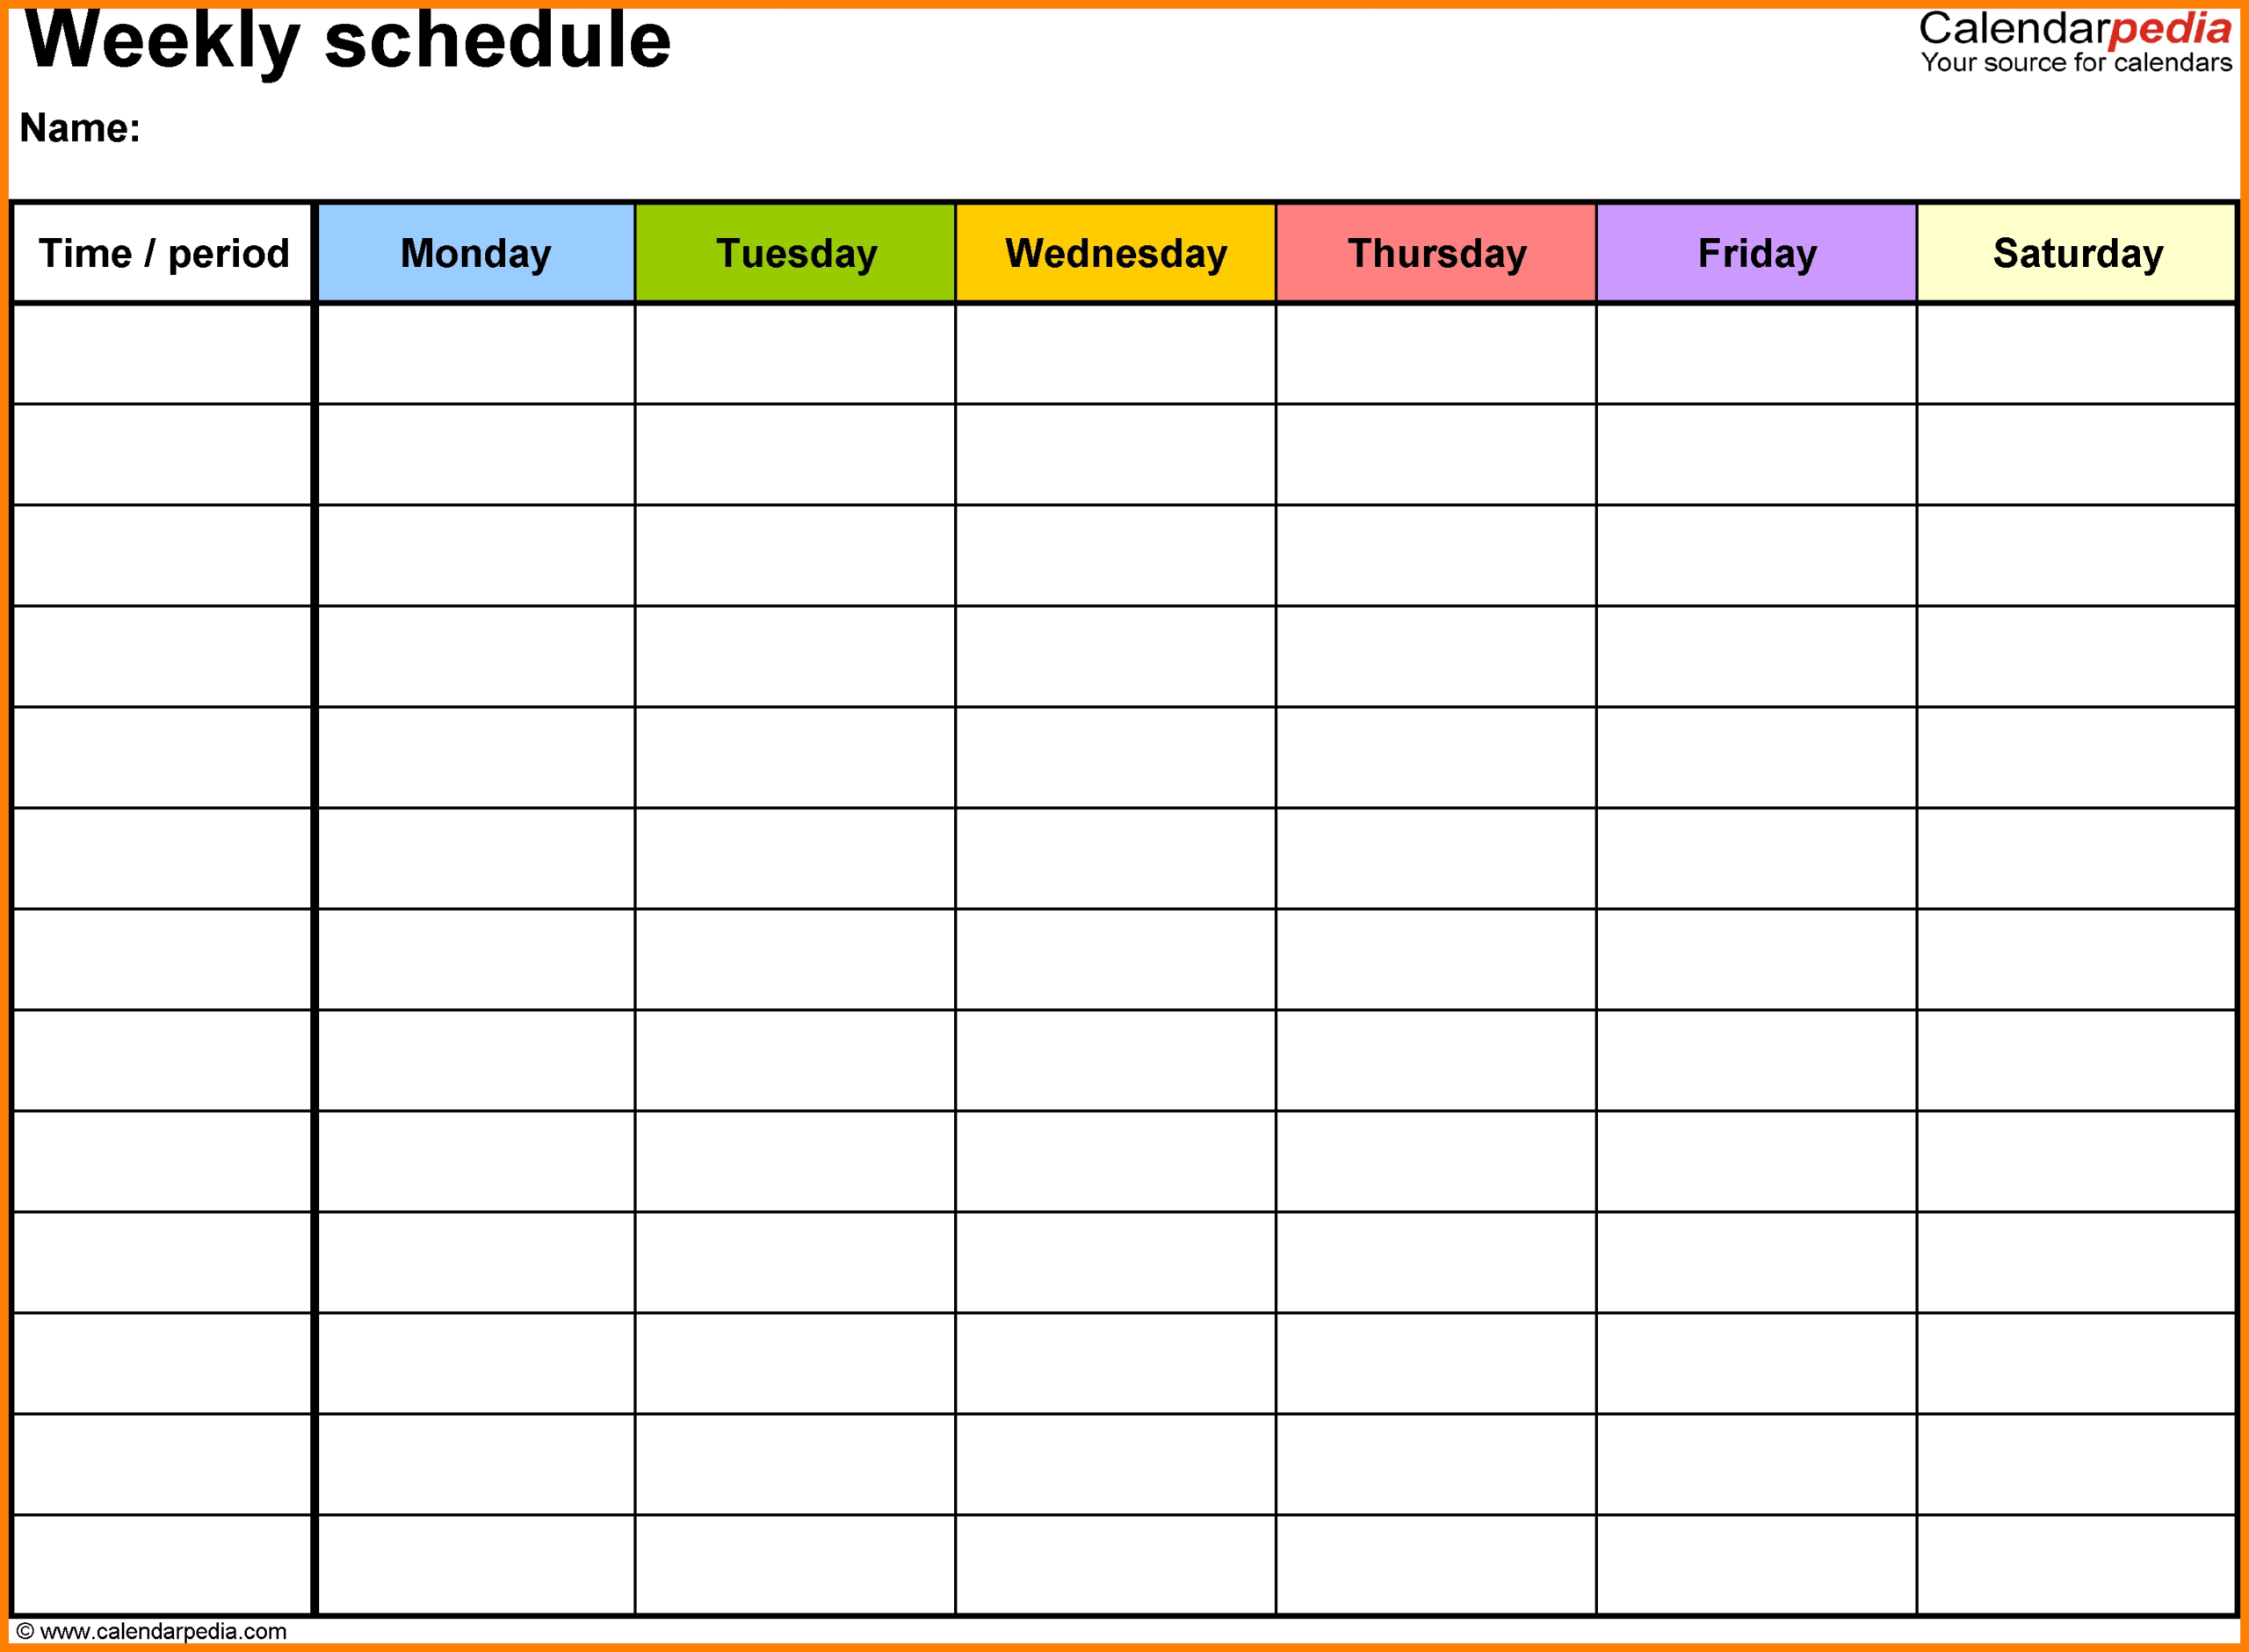 Printable Schedule With Time Slots | Example Calendar pertaining to Printable Calendar With Time Slots